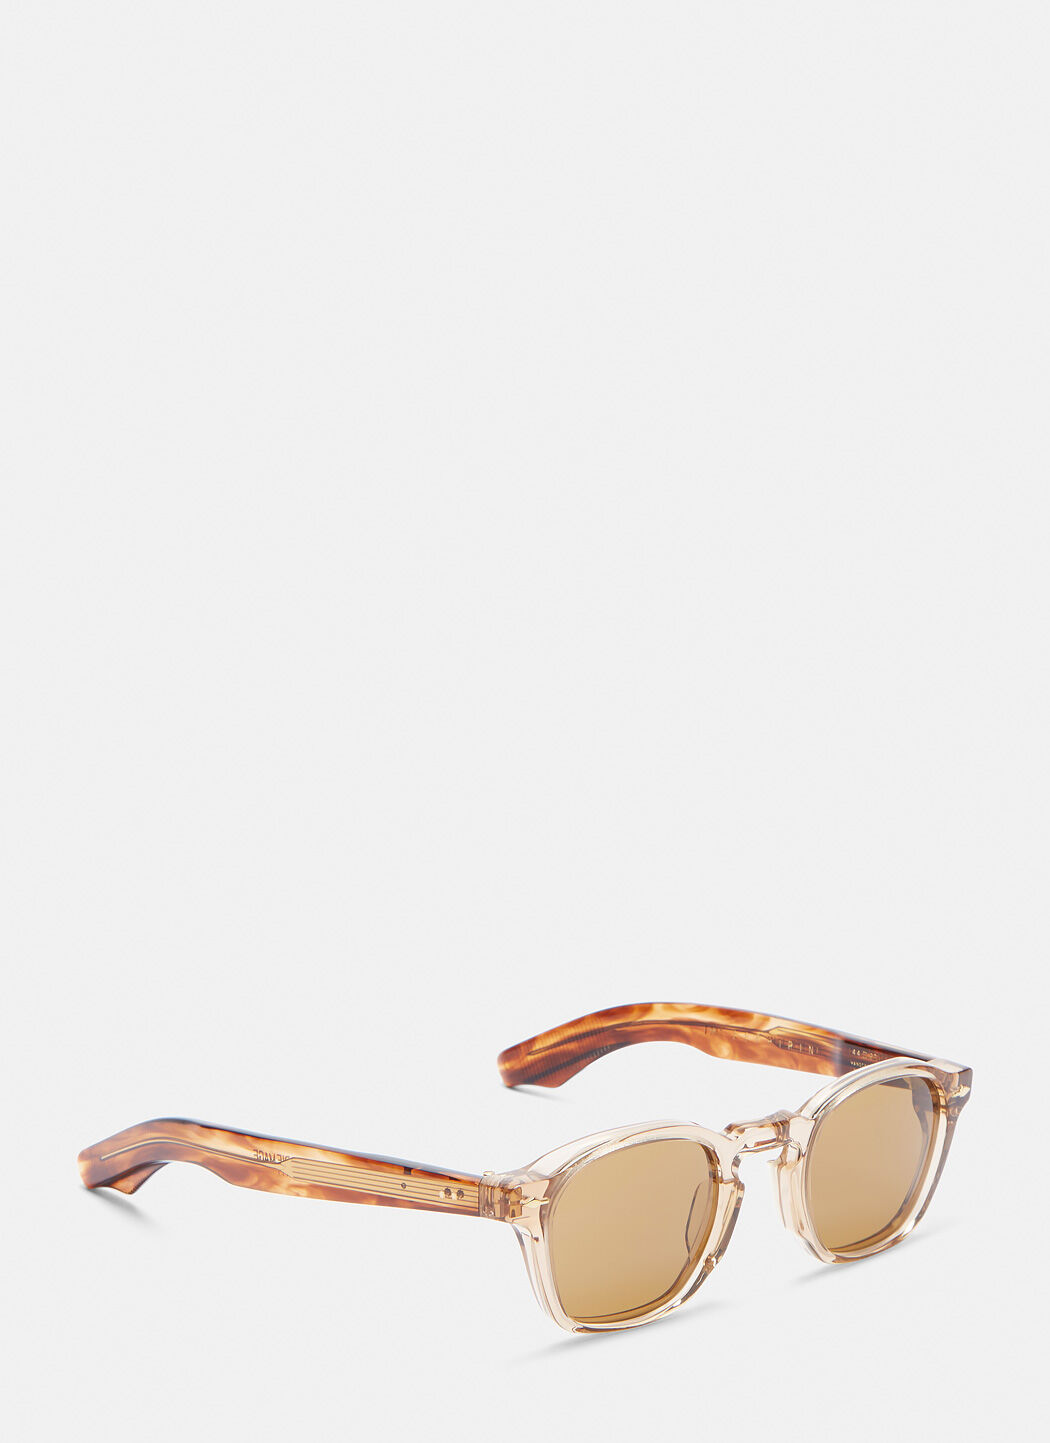 Unisex Zephirin Havana Sunglasses in Brown